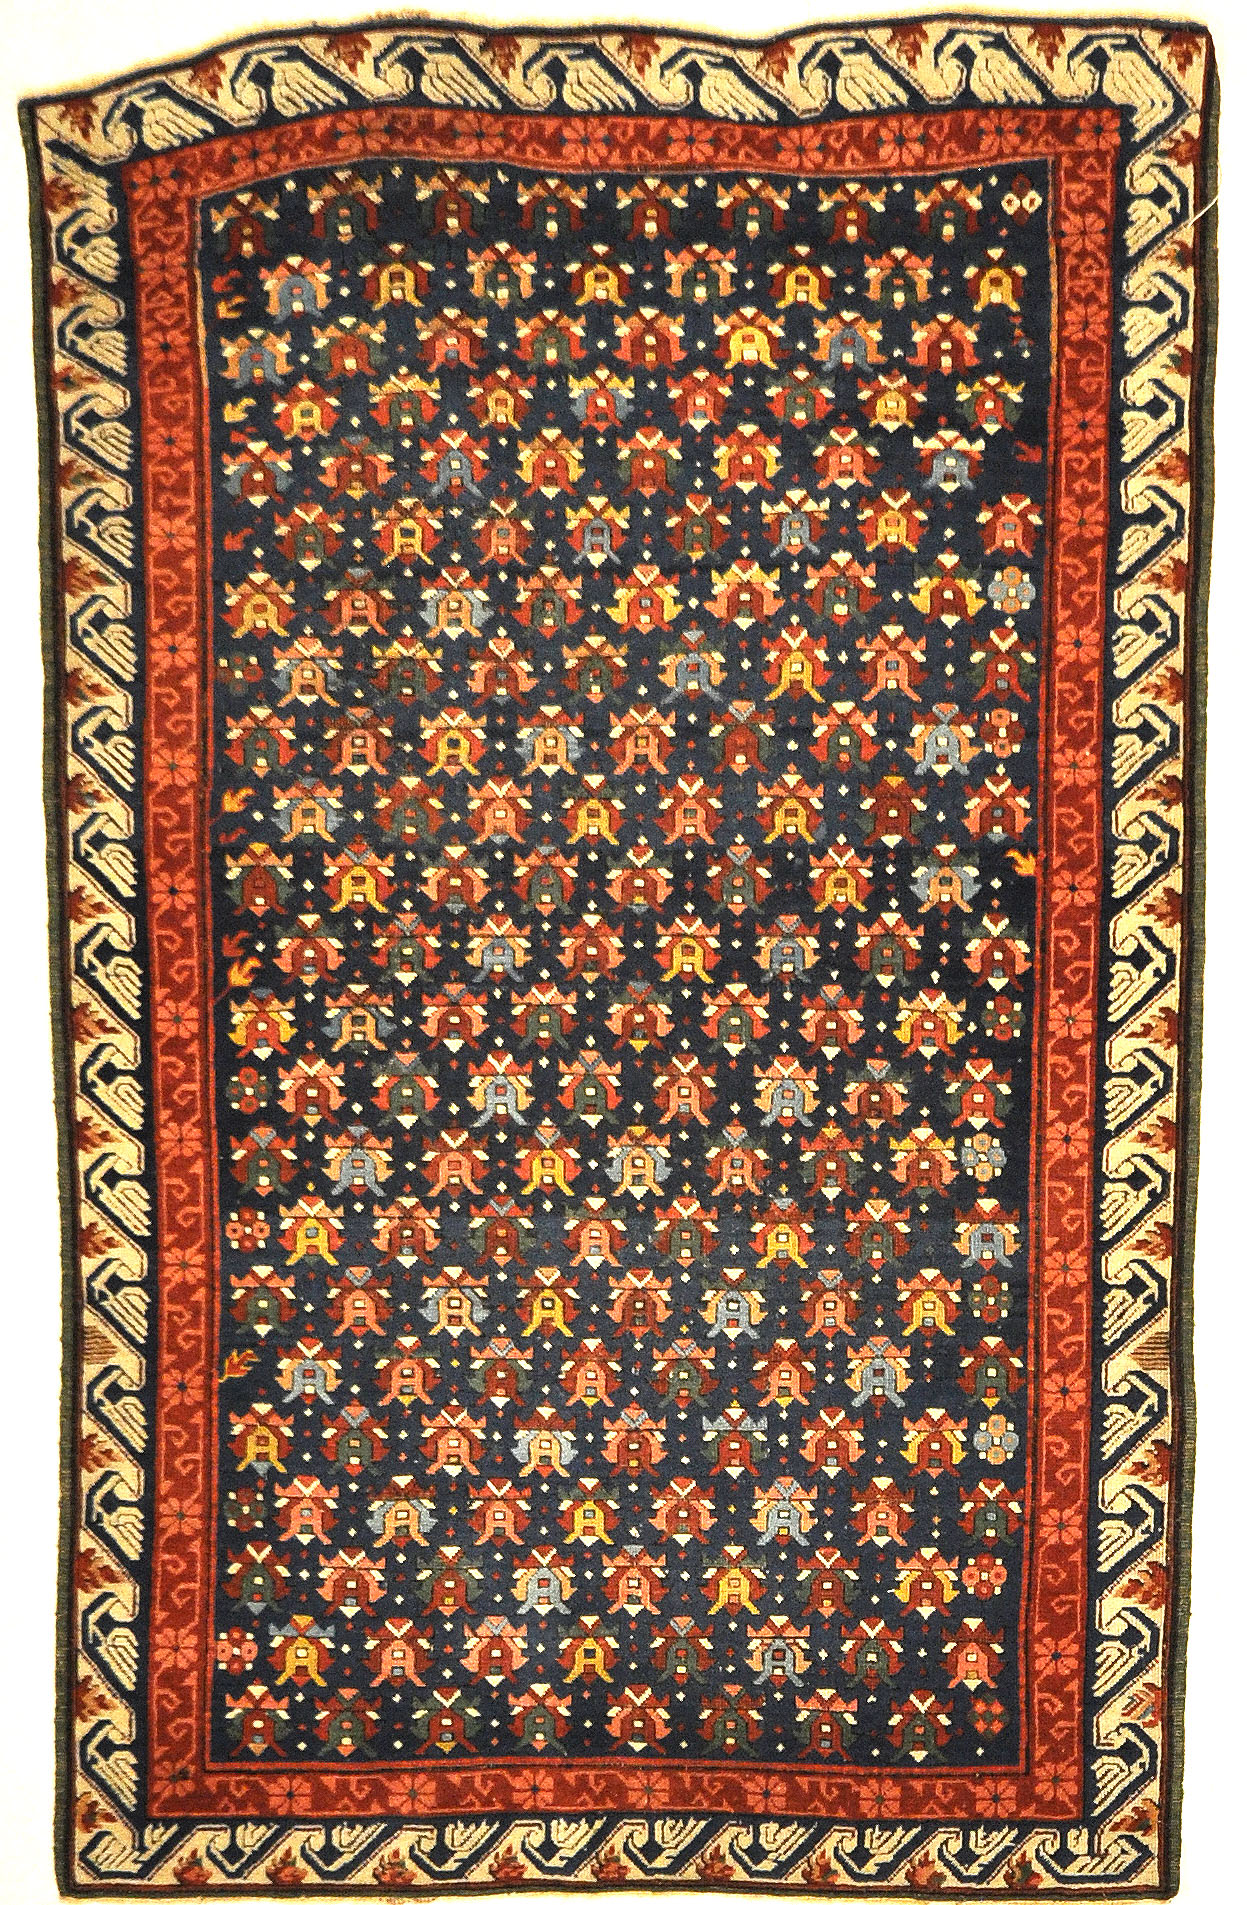 Rare Antique Cabbage Rose Seychour Rug. A piece of genuine authentic antique woven carpet art sold by the Santa Barbara Design Center, Rugs and More.